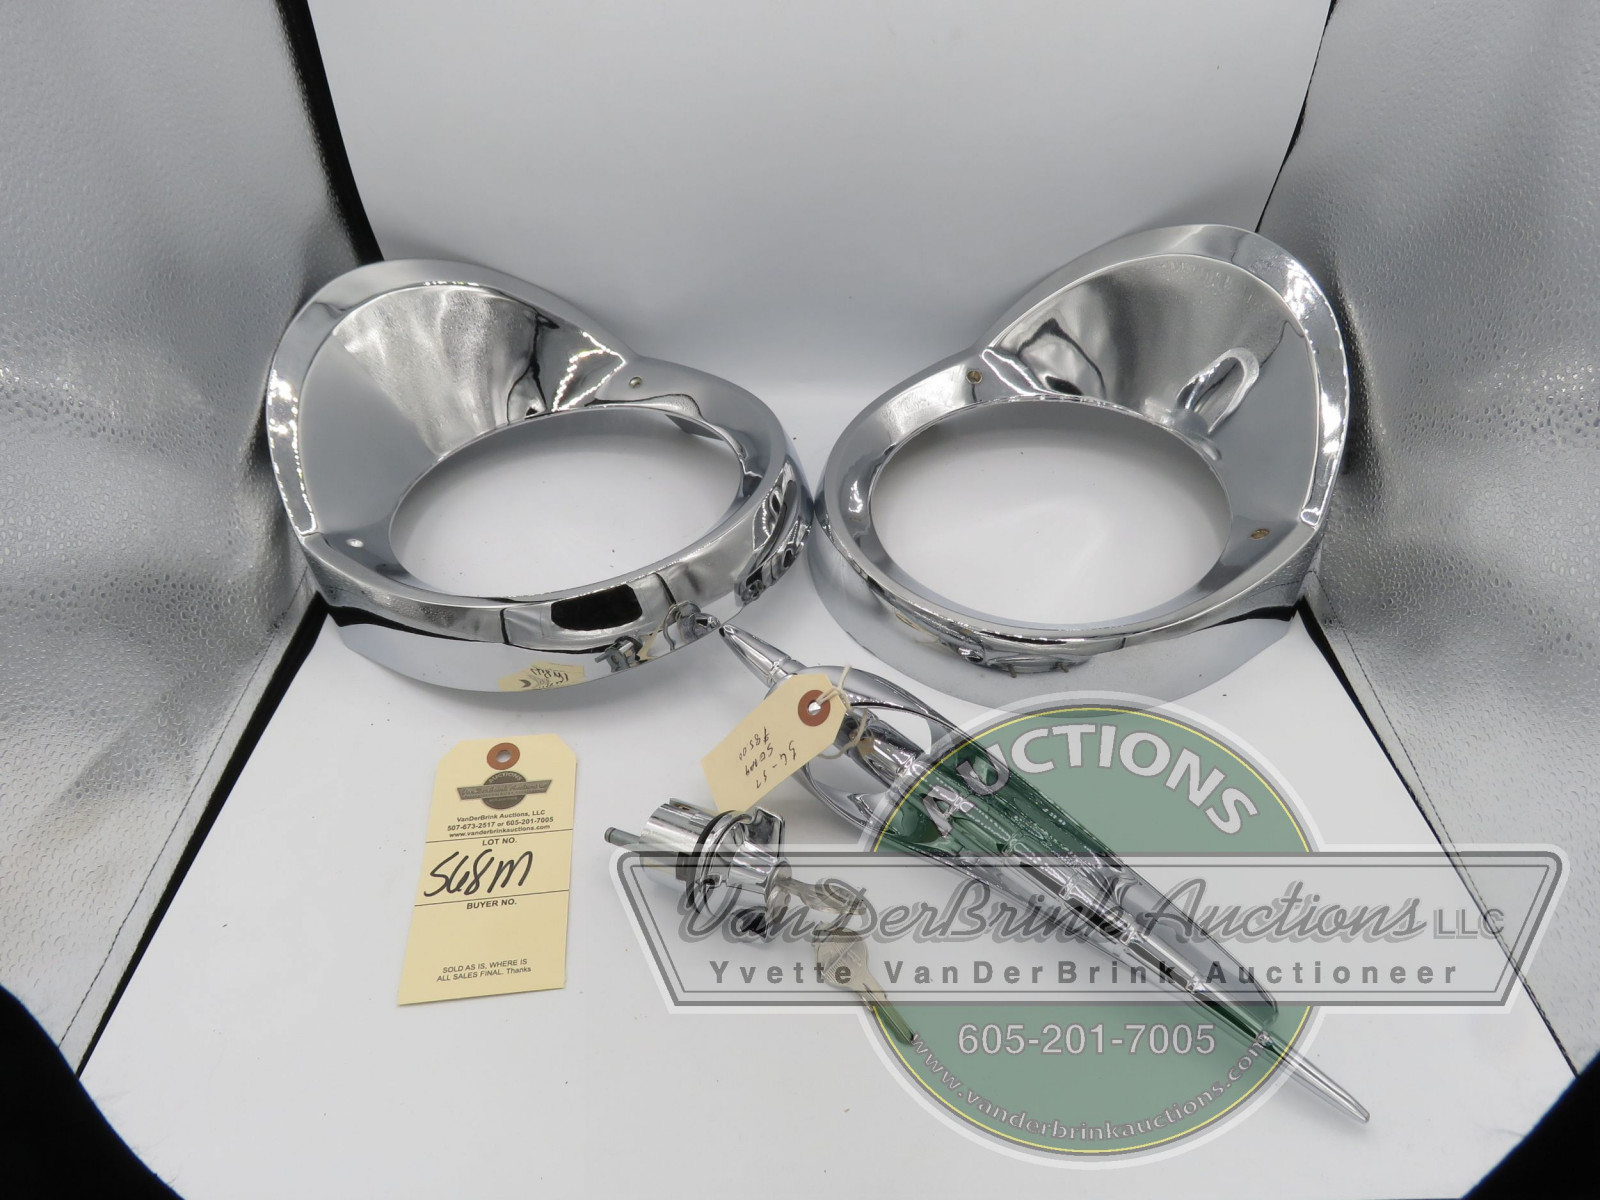 1956 STUDEBAKER HEADLIGHT BEZELS AND  PARTS - Image 1